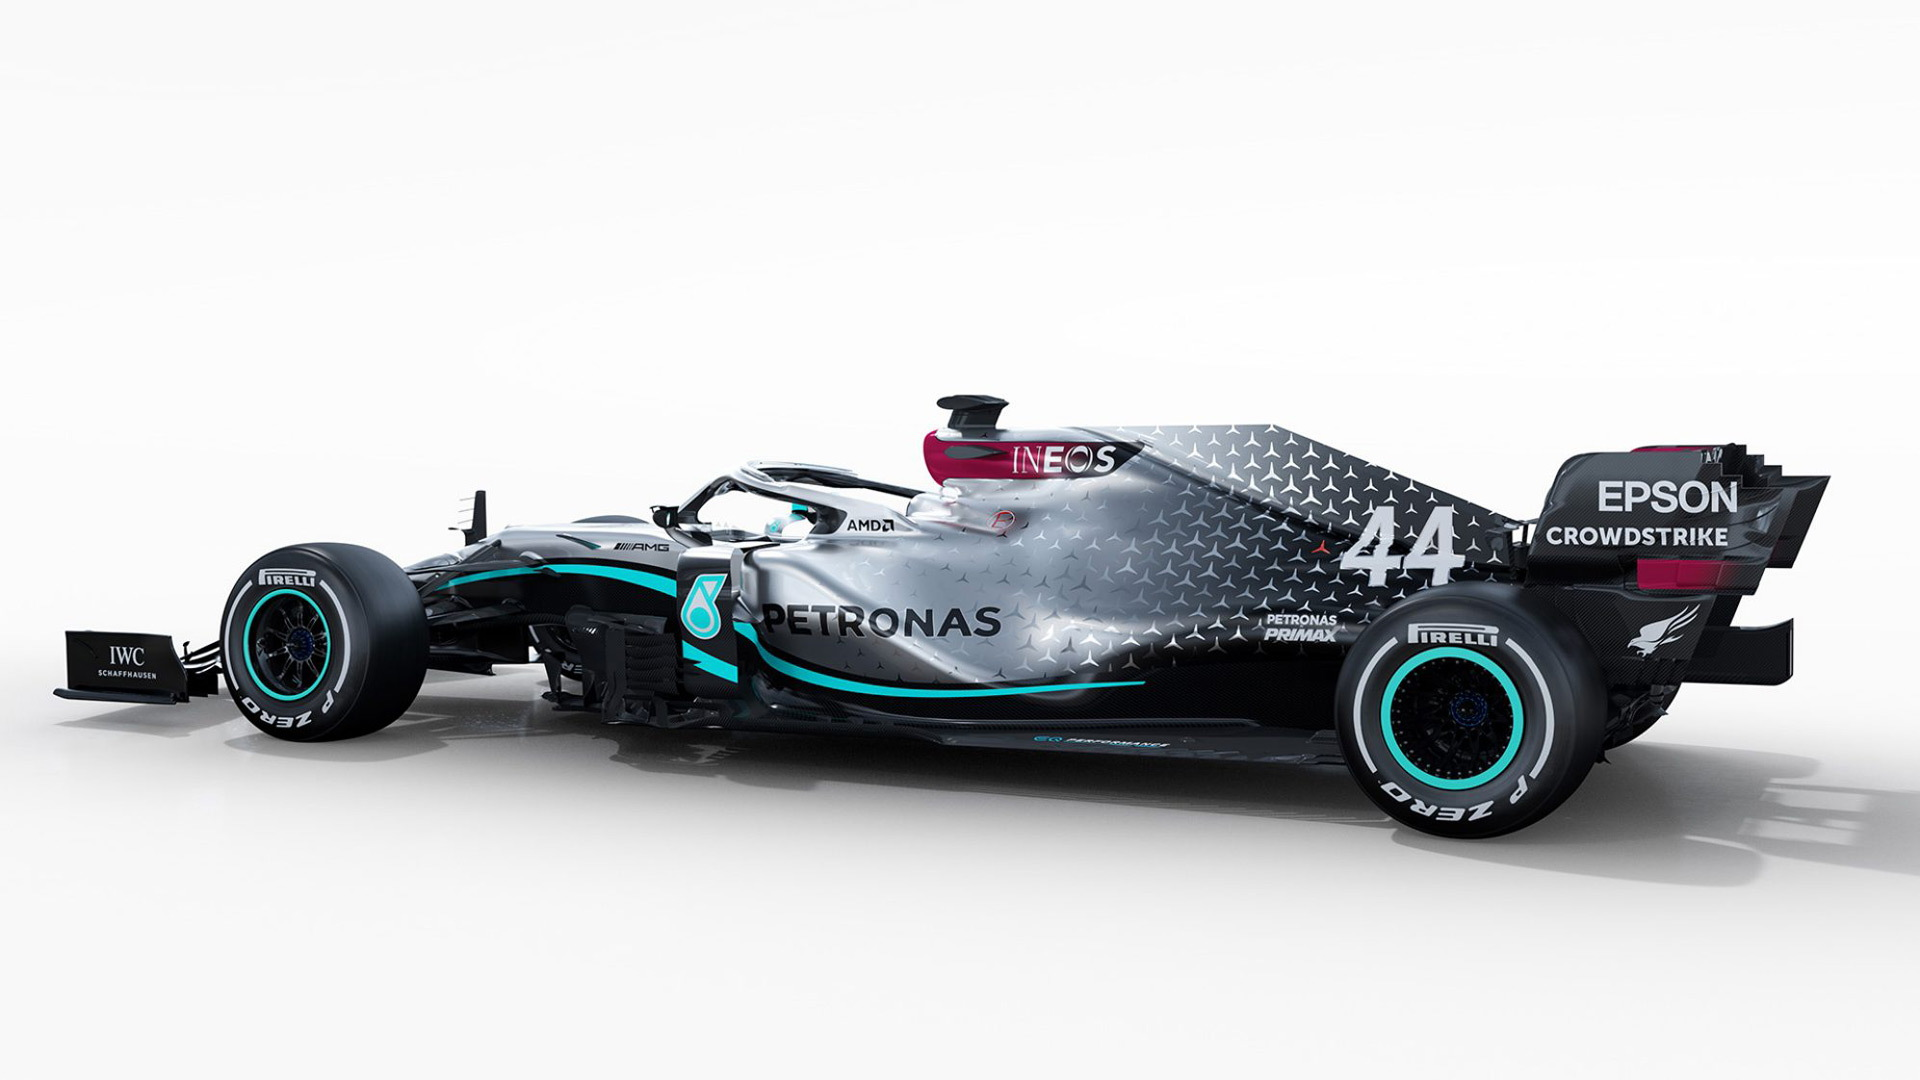 Mercedes-AMG F1 W11 EQ Performance 2020 Formula One race car